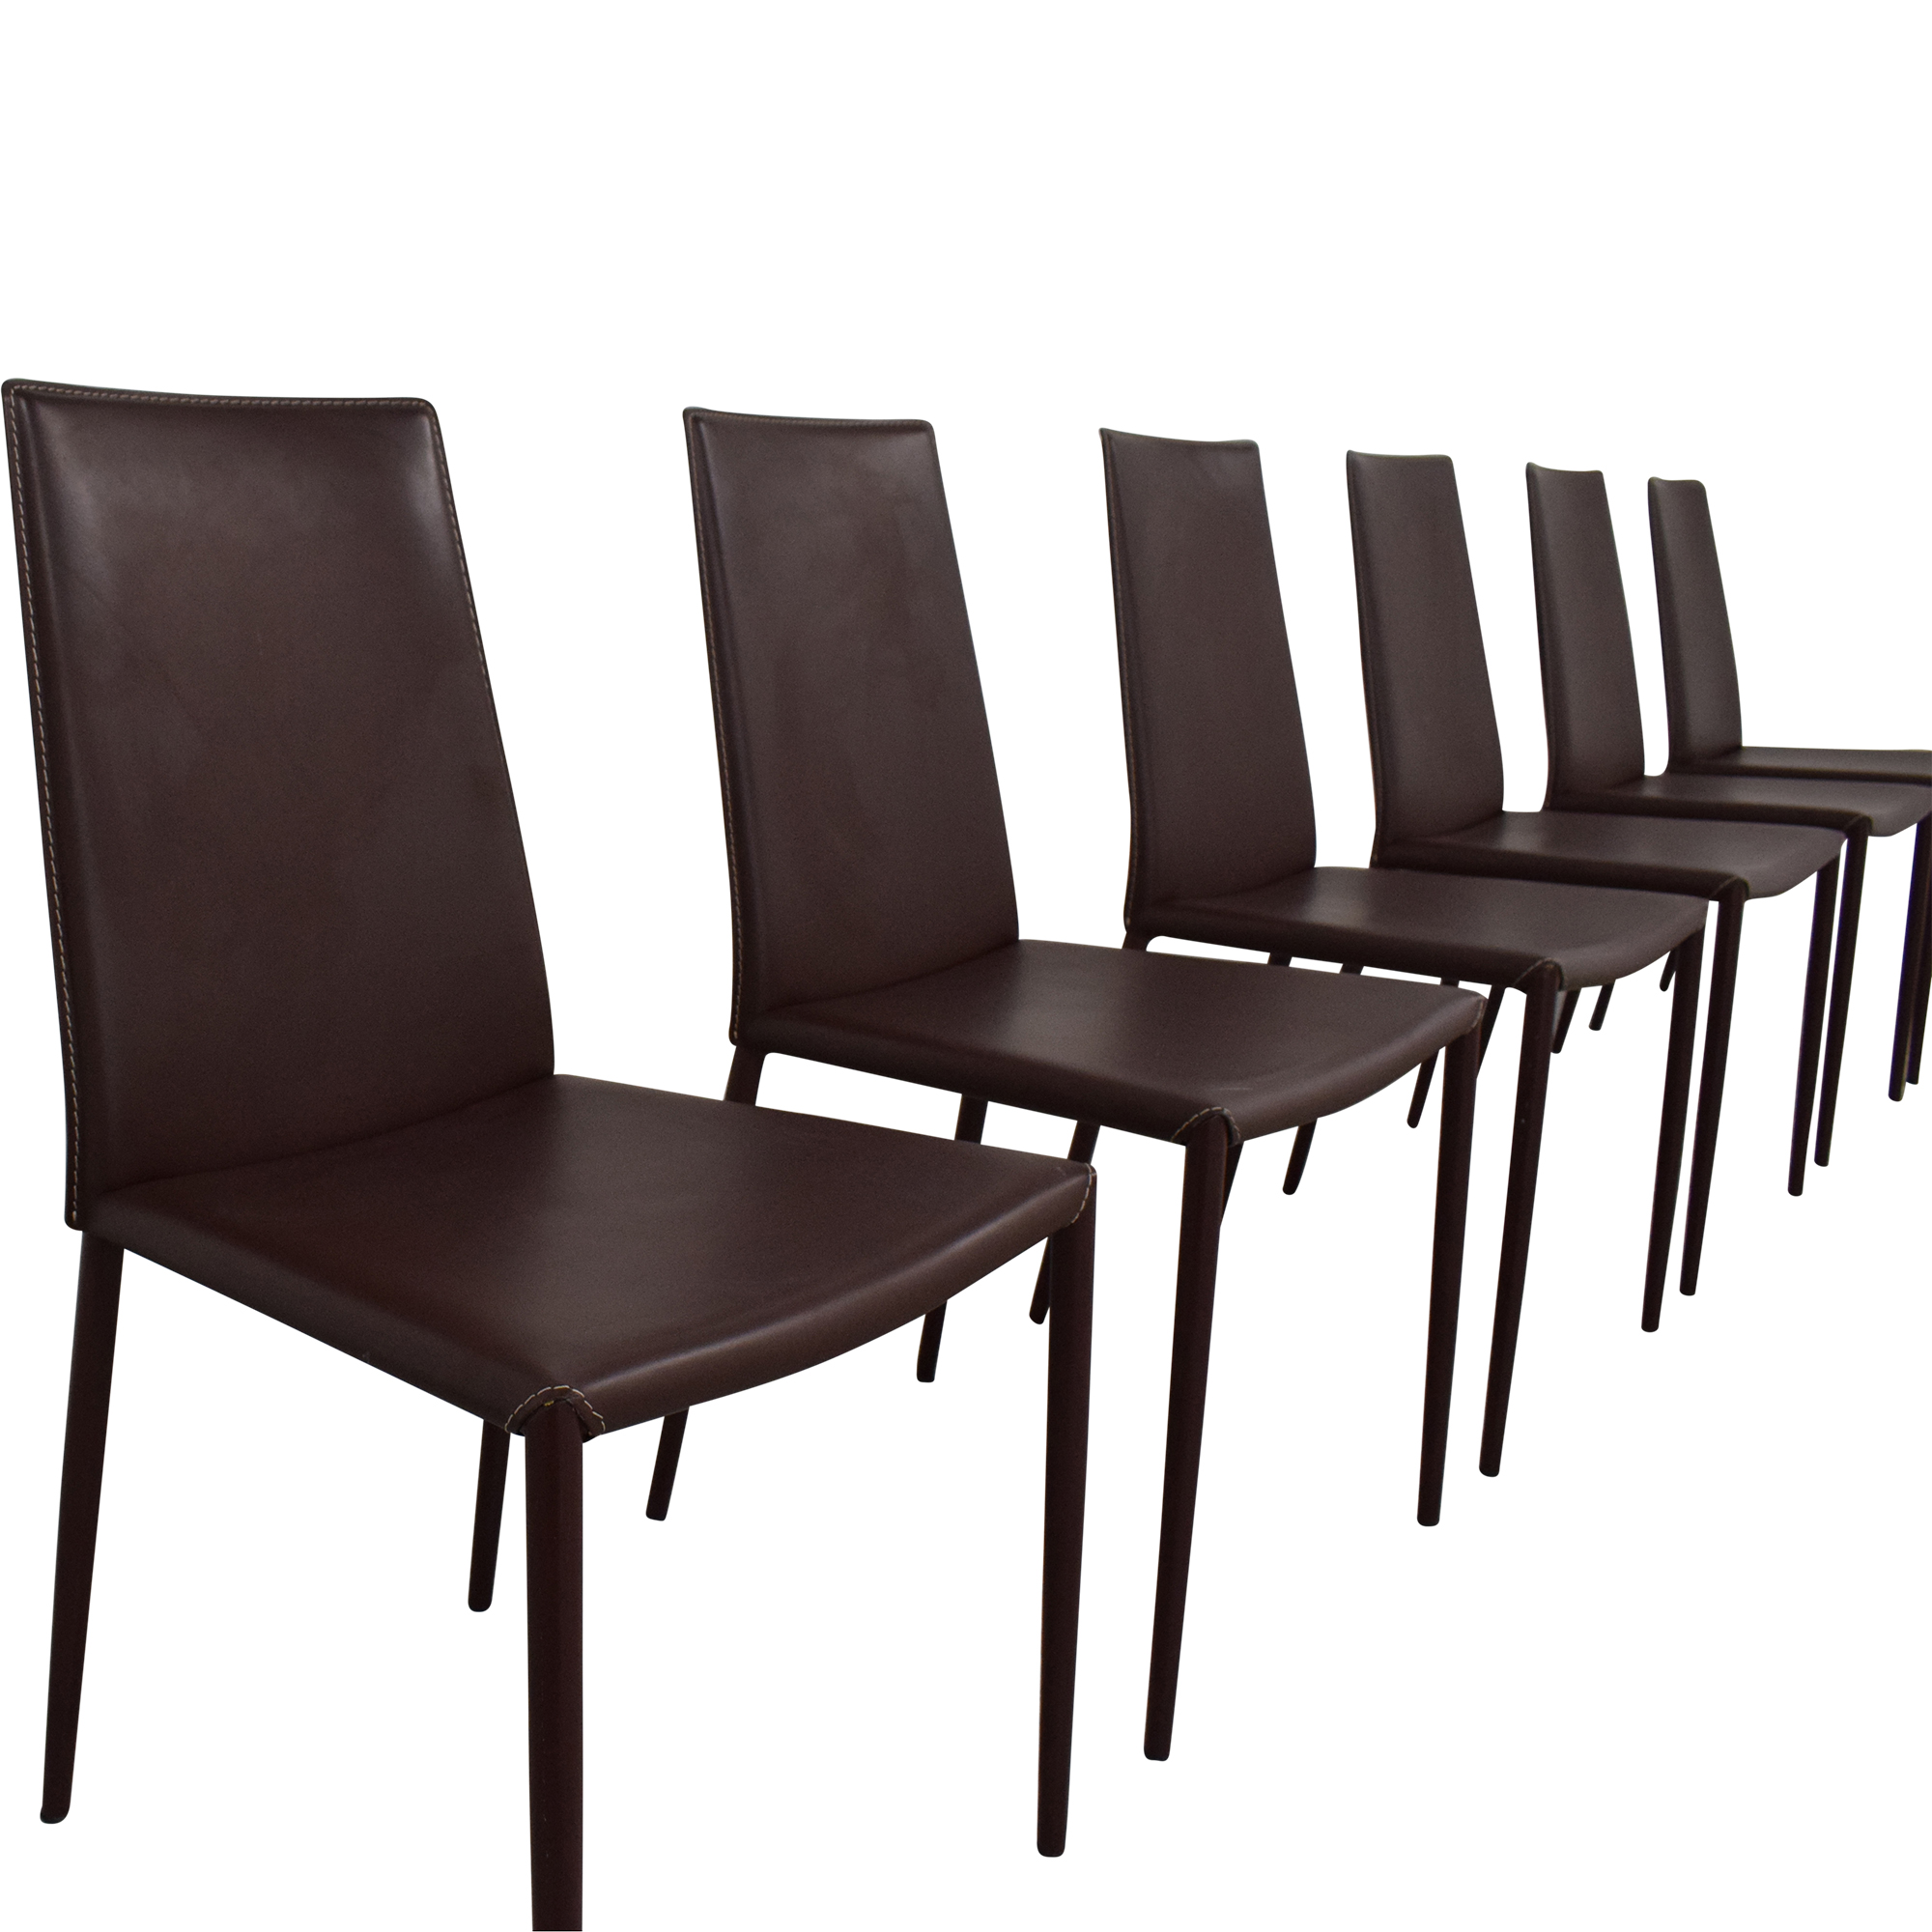 buy Calligaris Boheme by Connubia Dining Chairs Calligaris Chairs